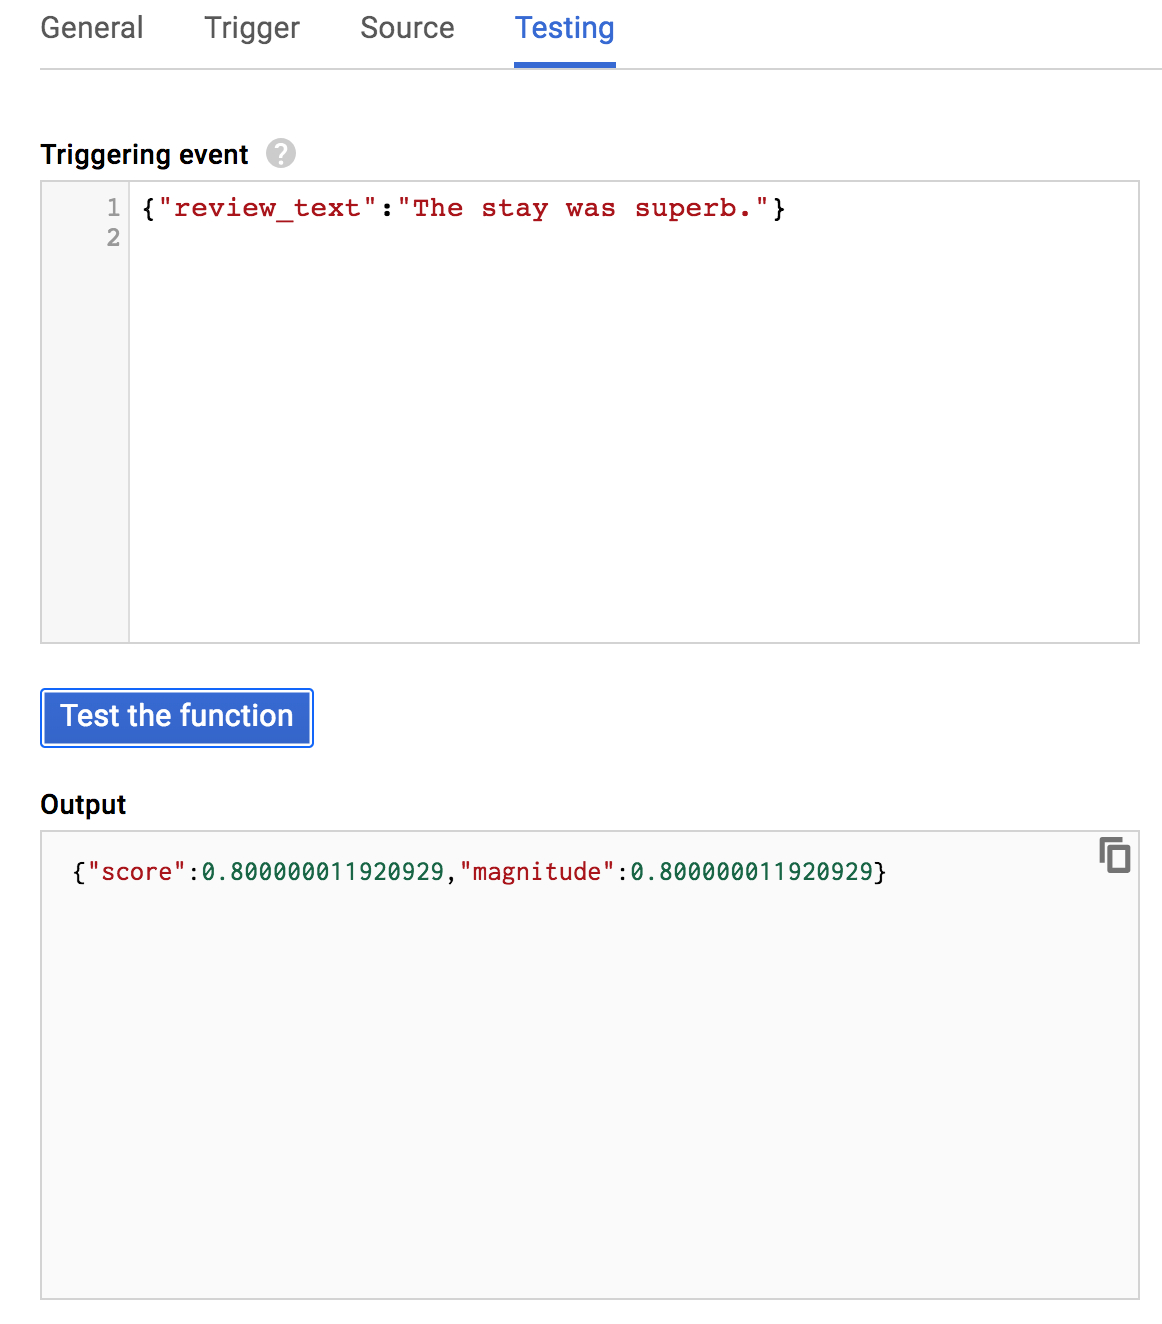 Api Enabled Spreadsheets Intended For Tutorial : Analyzing Reviews Using Google Sheets And Cloud Natural